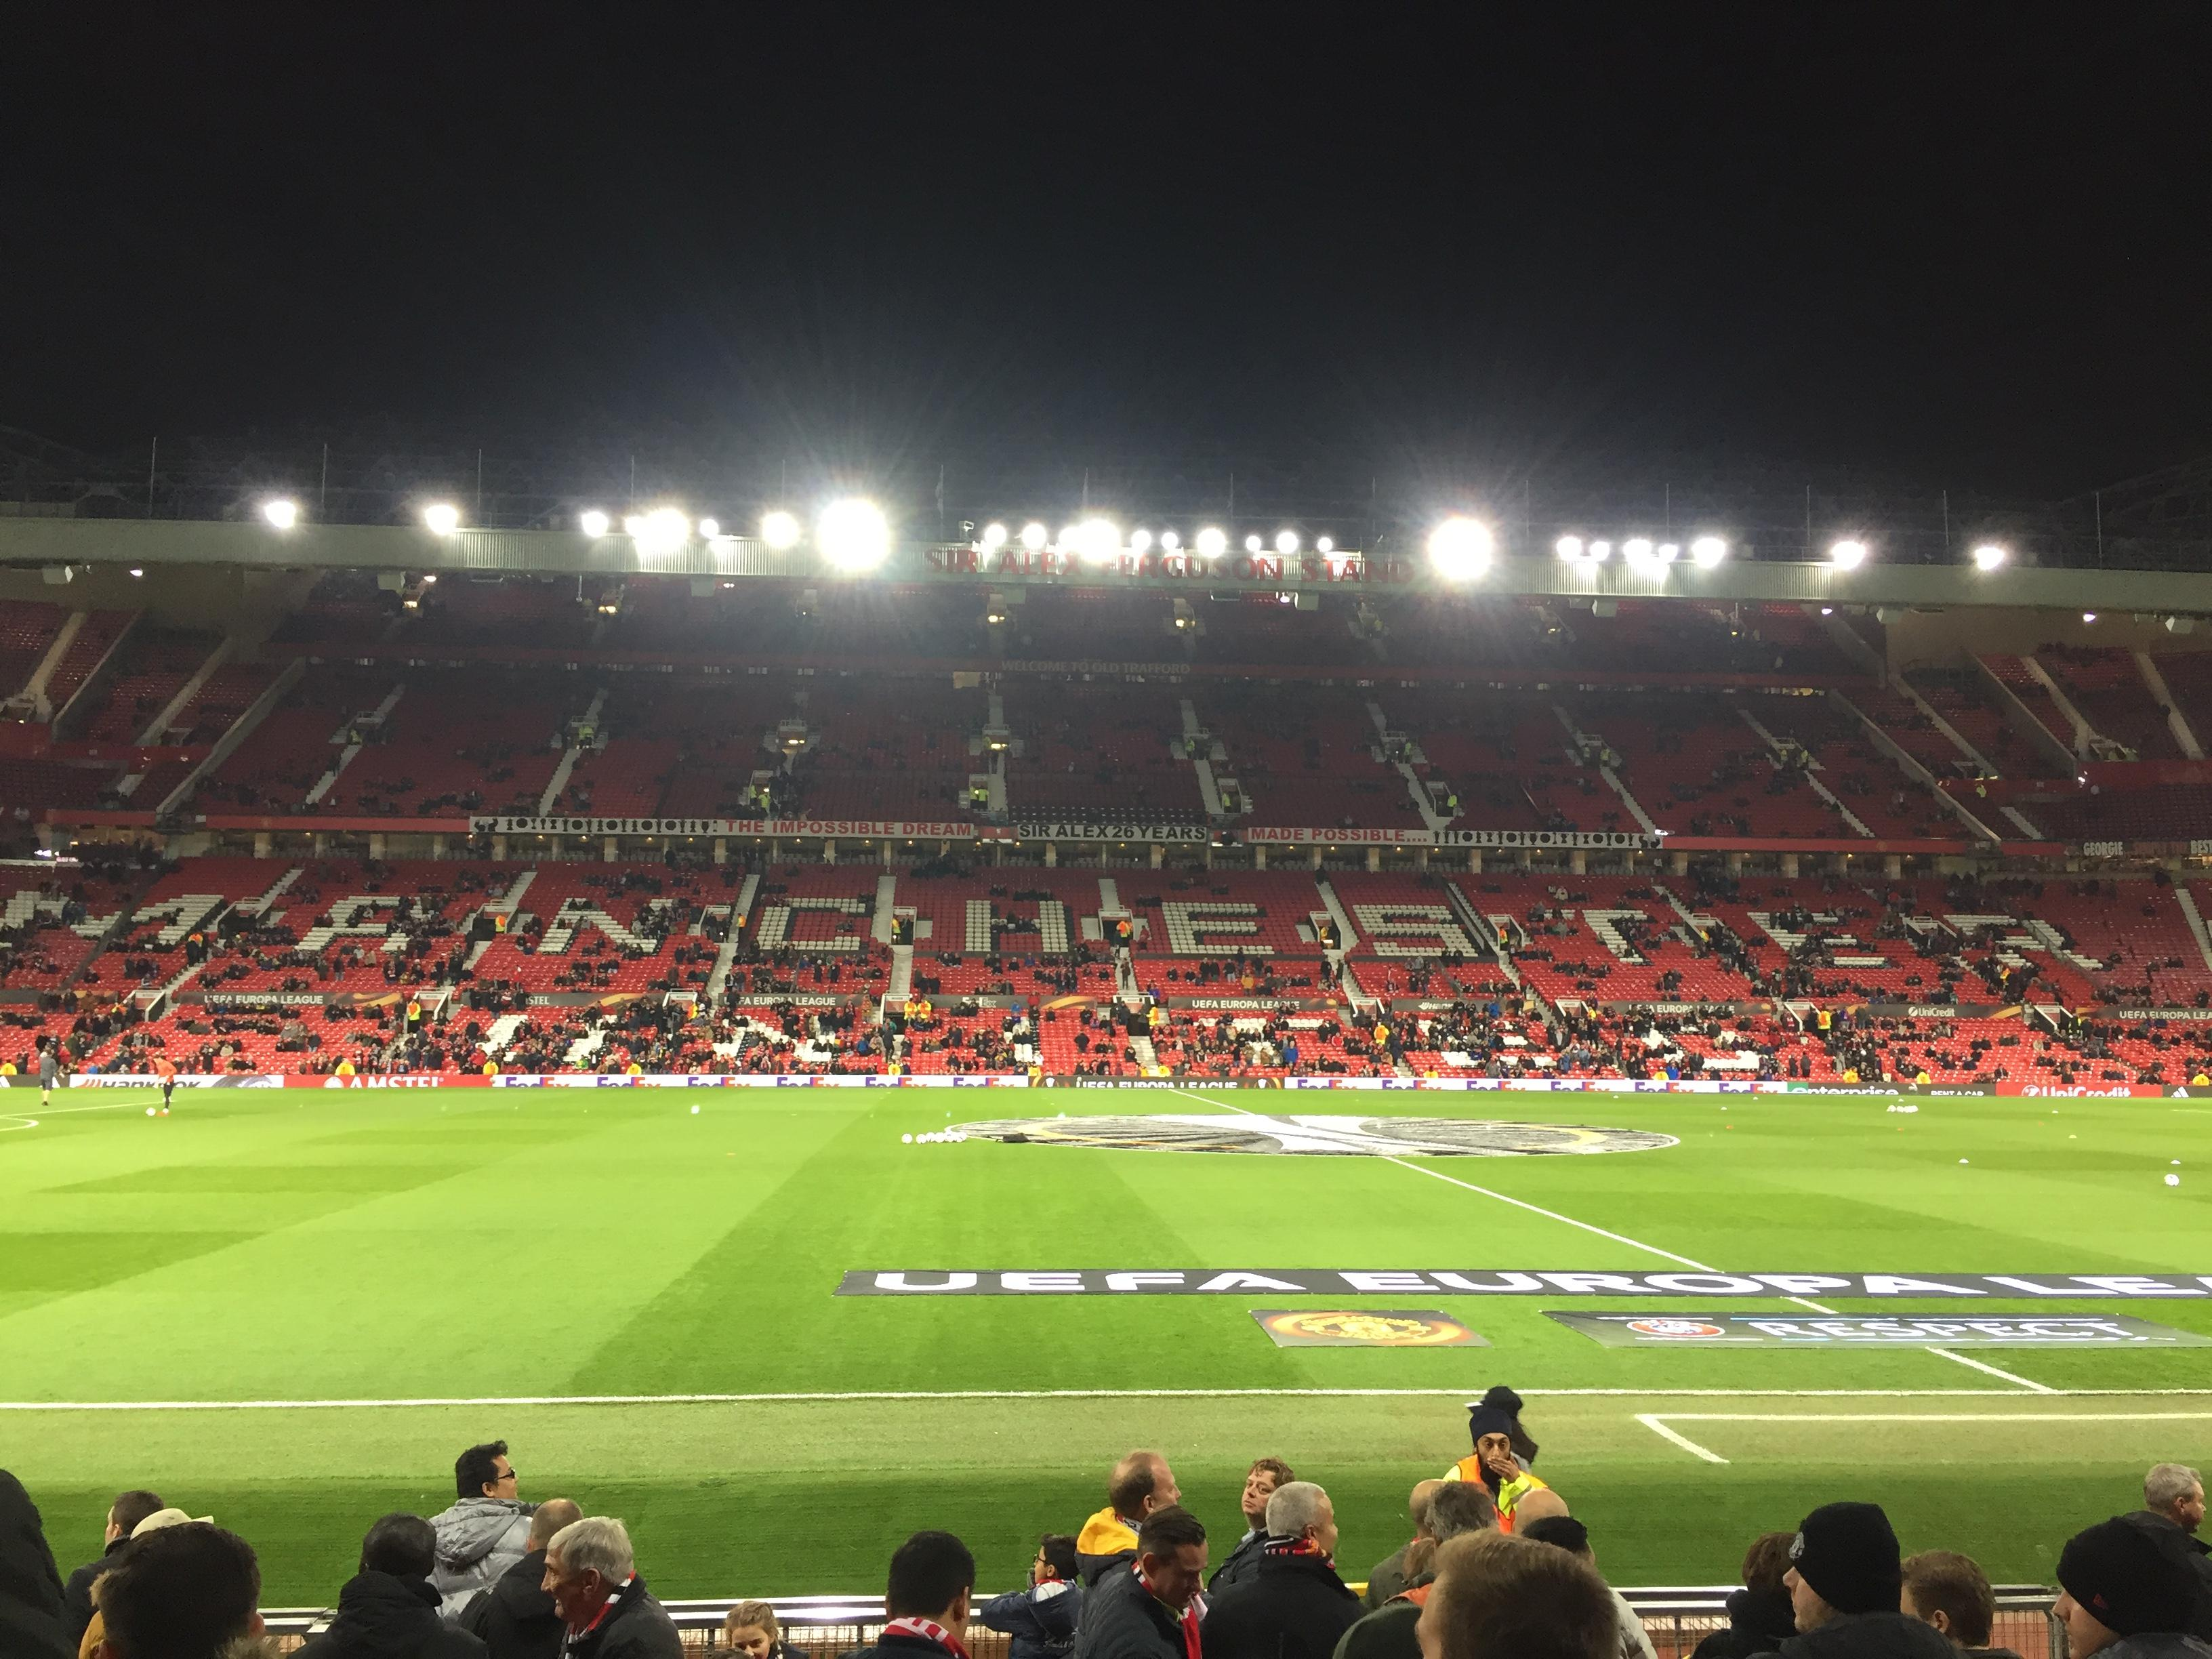 Old Trafford Section STH124 Row 2 Seat 151